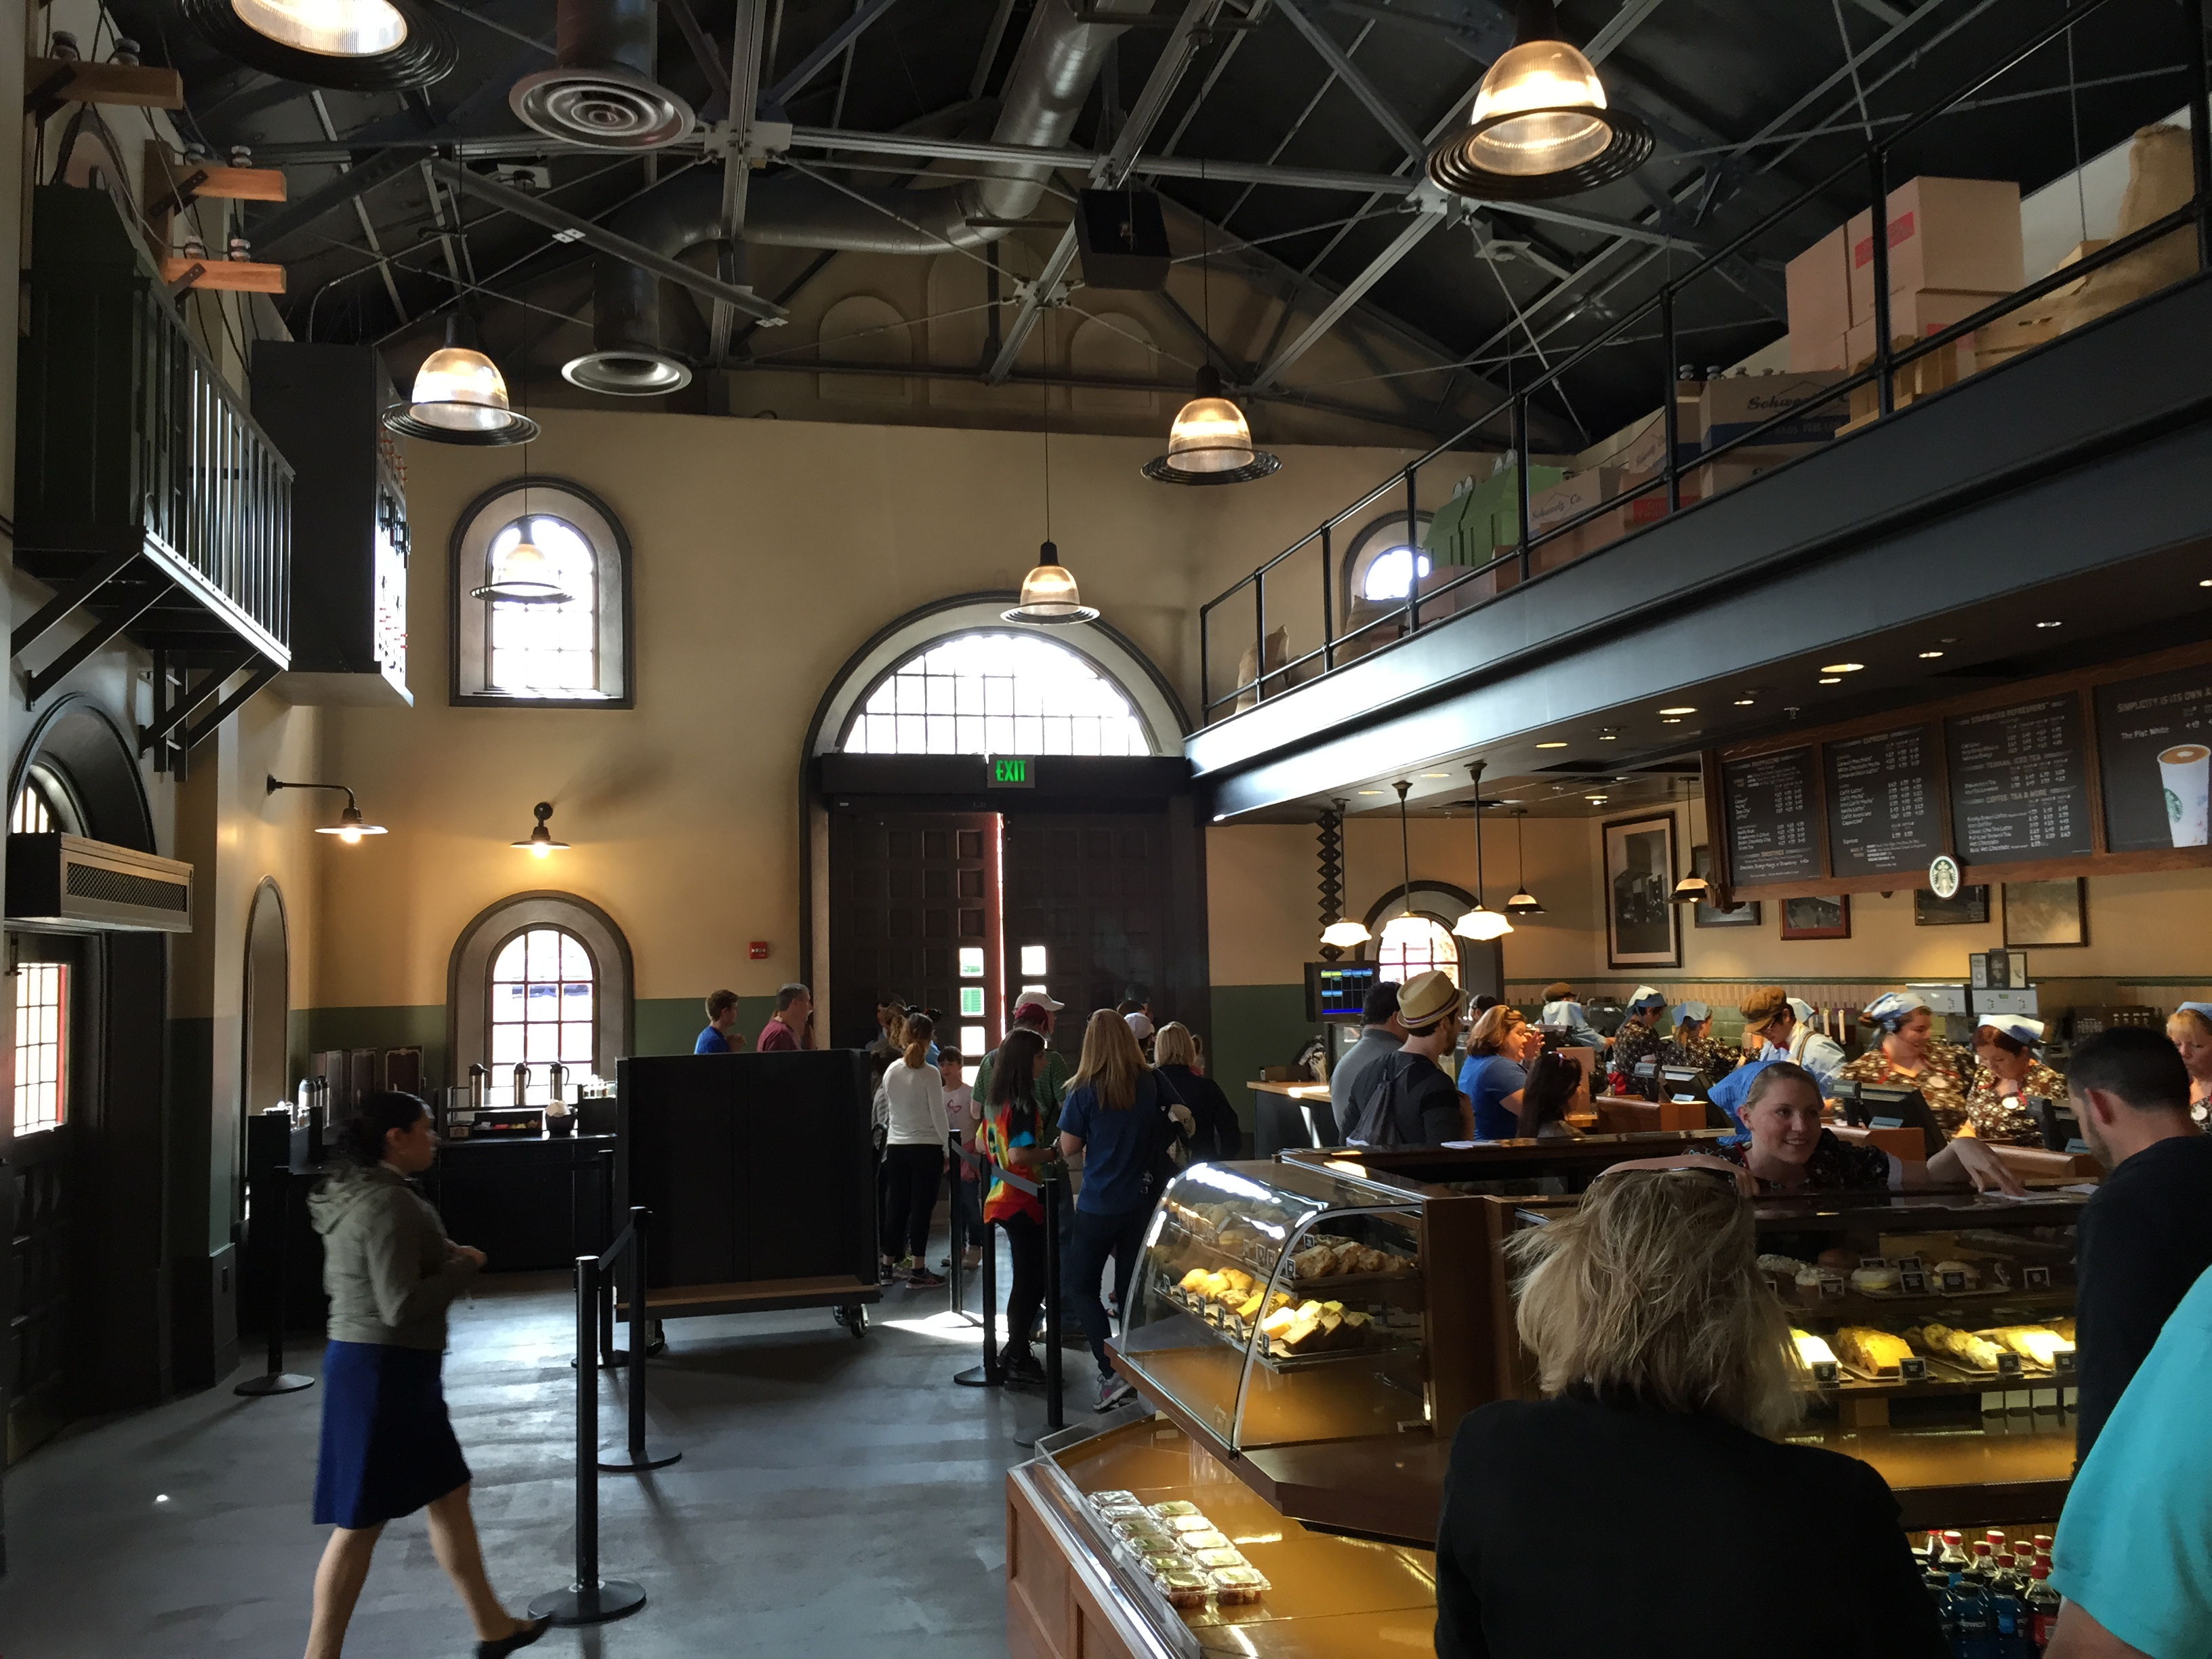 Trolley Car Cafe Starbucks Location Soft Opens At Disney's